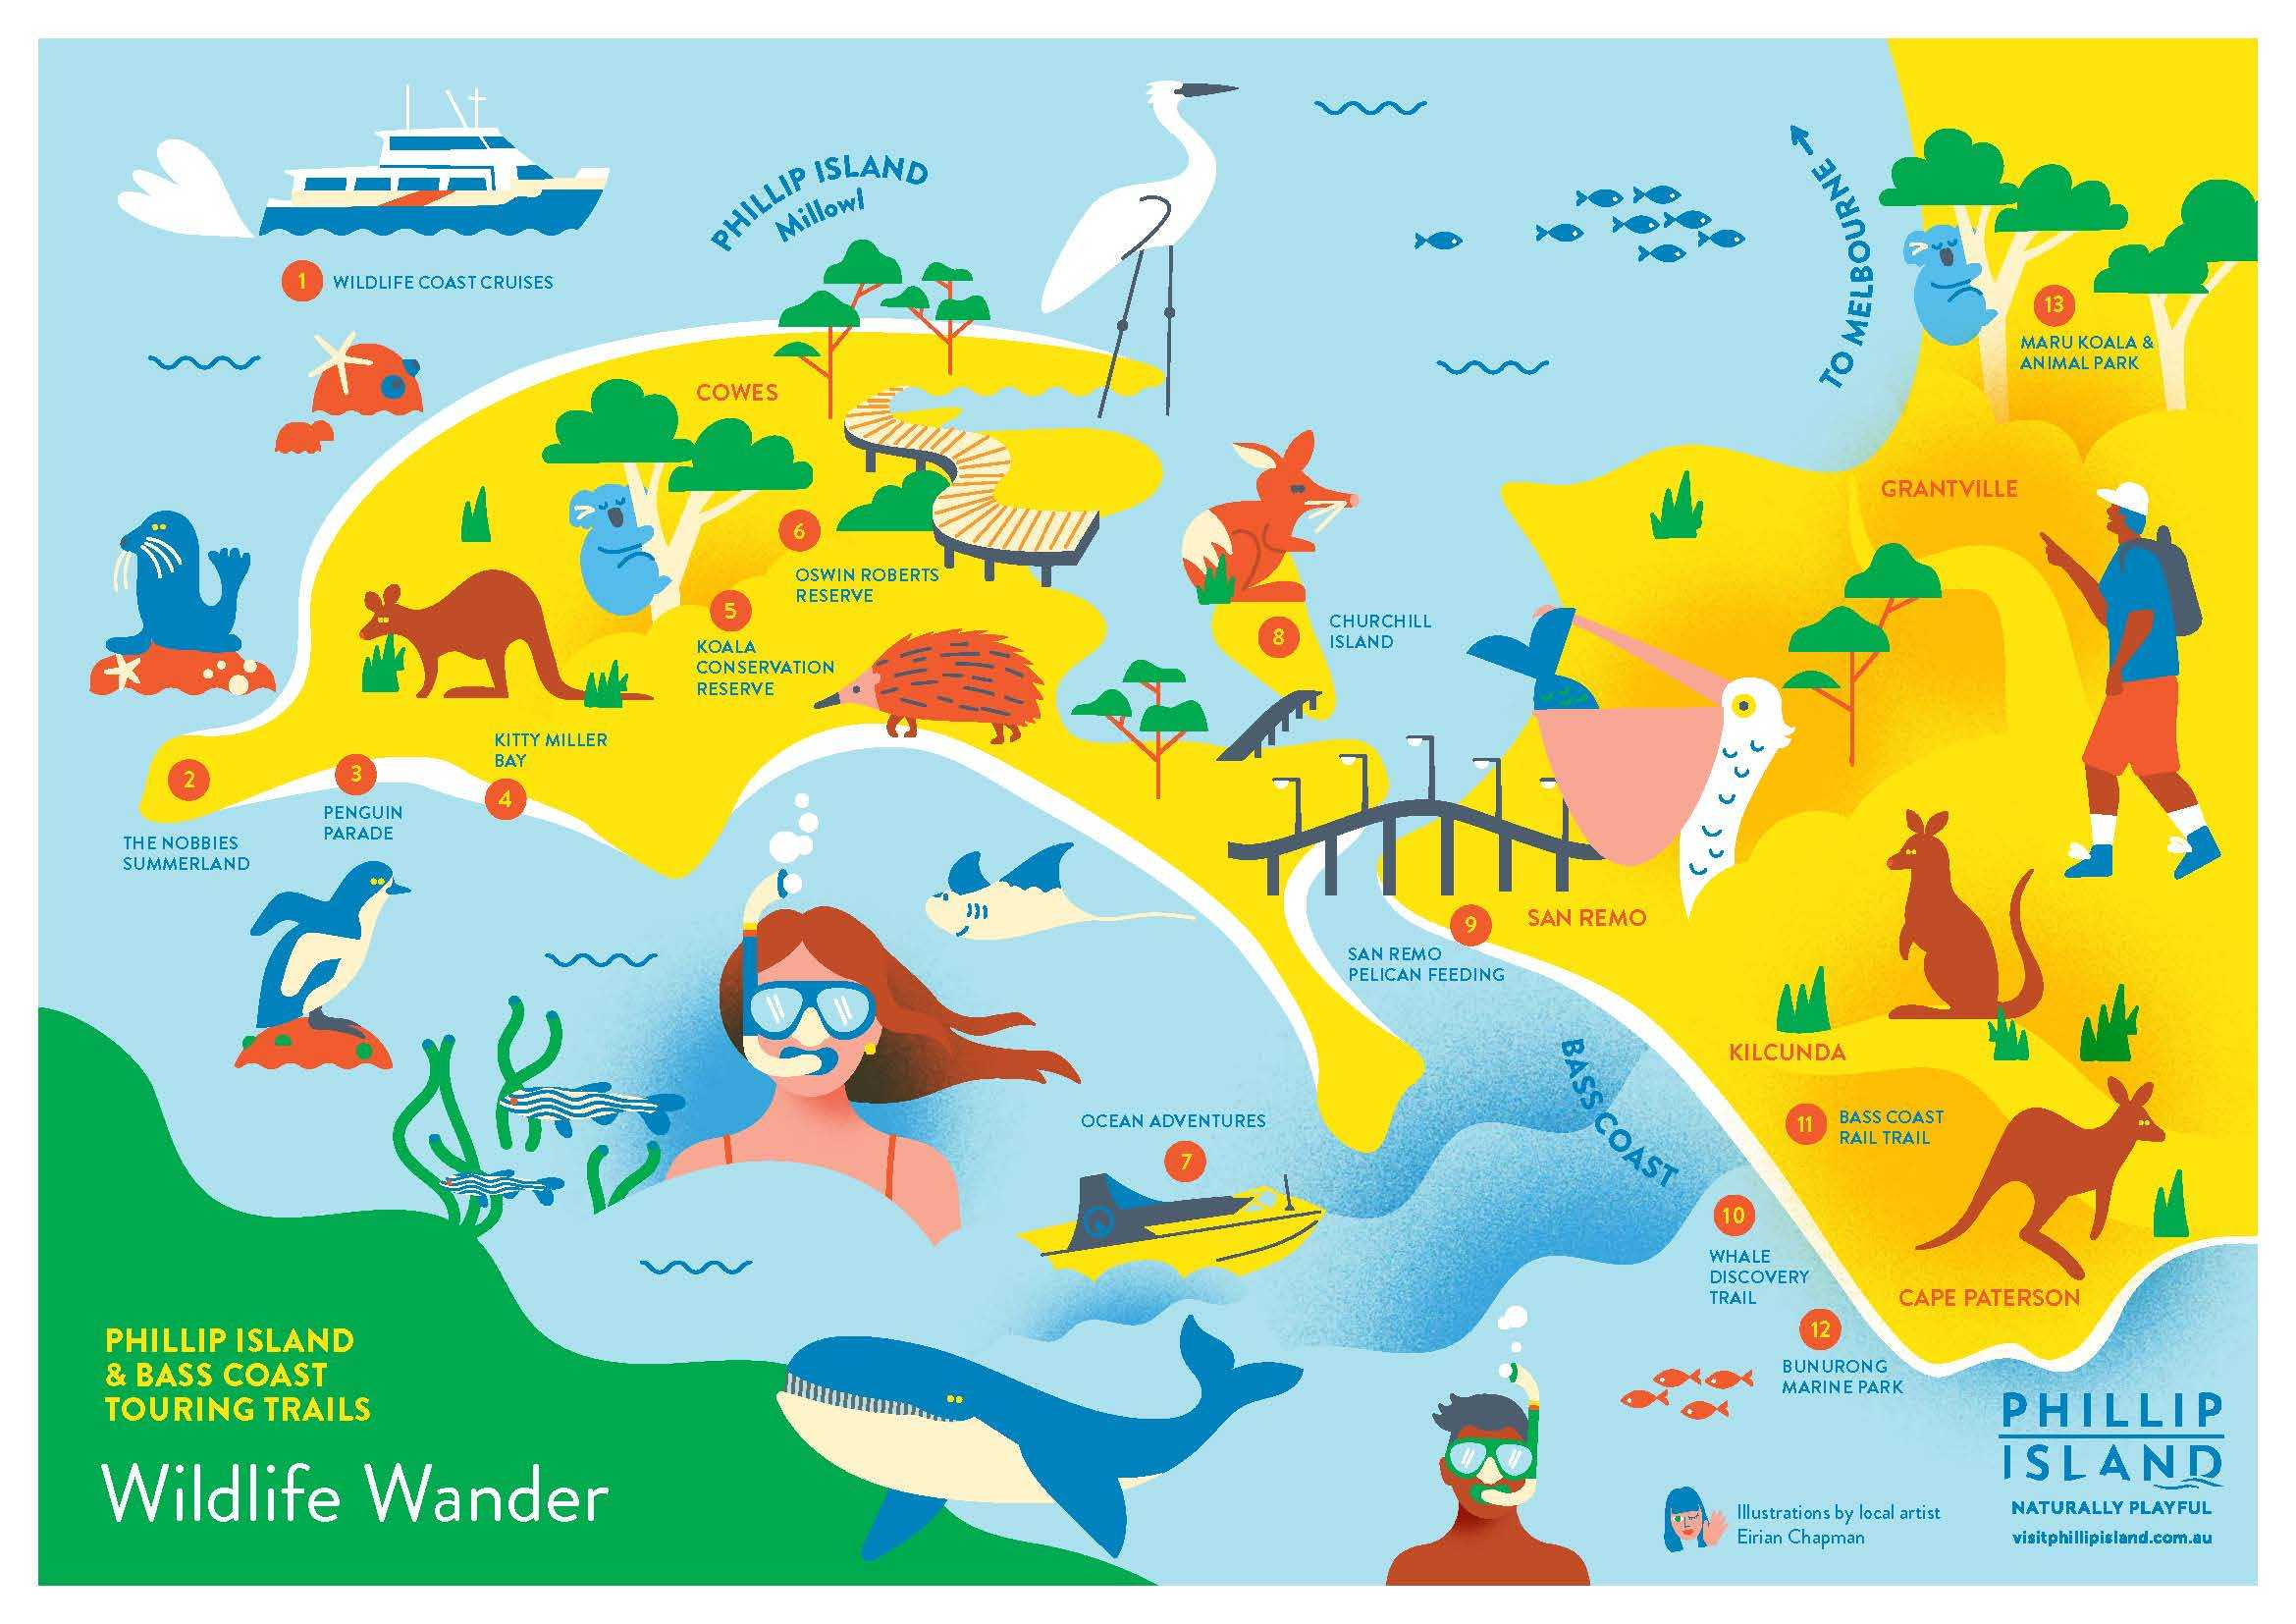 Phillip Island Wildlife Wander Trail